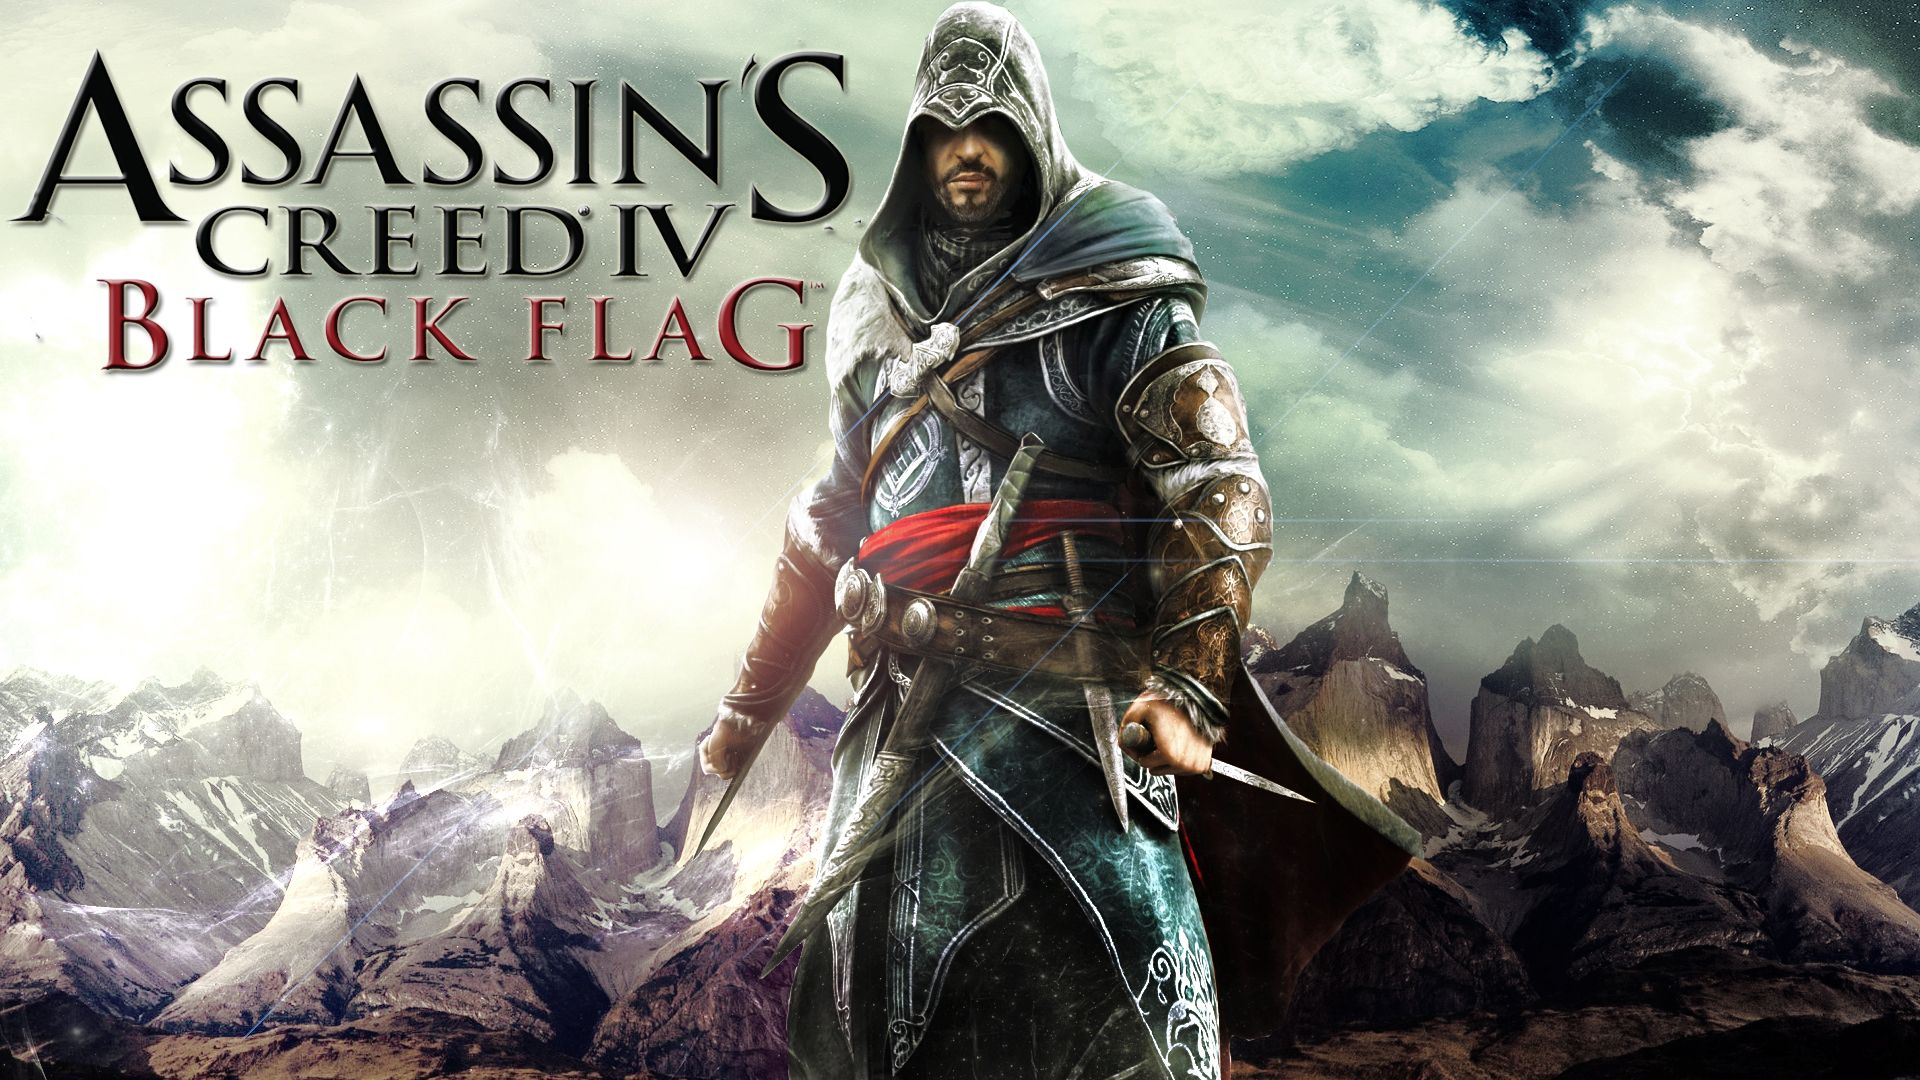 Download Assassins Creed 4 Backgrounds Lolshui Assassins Creed